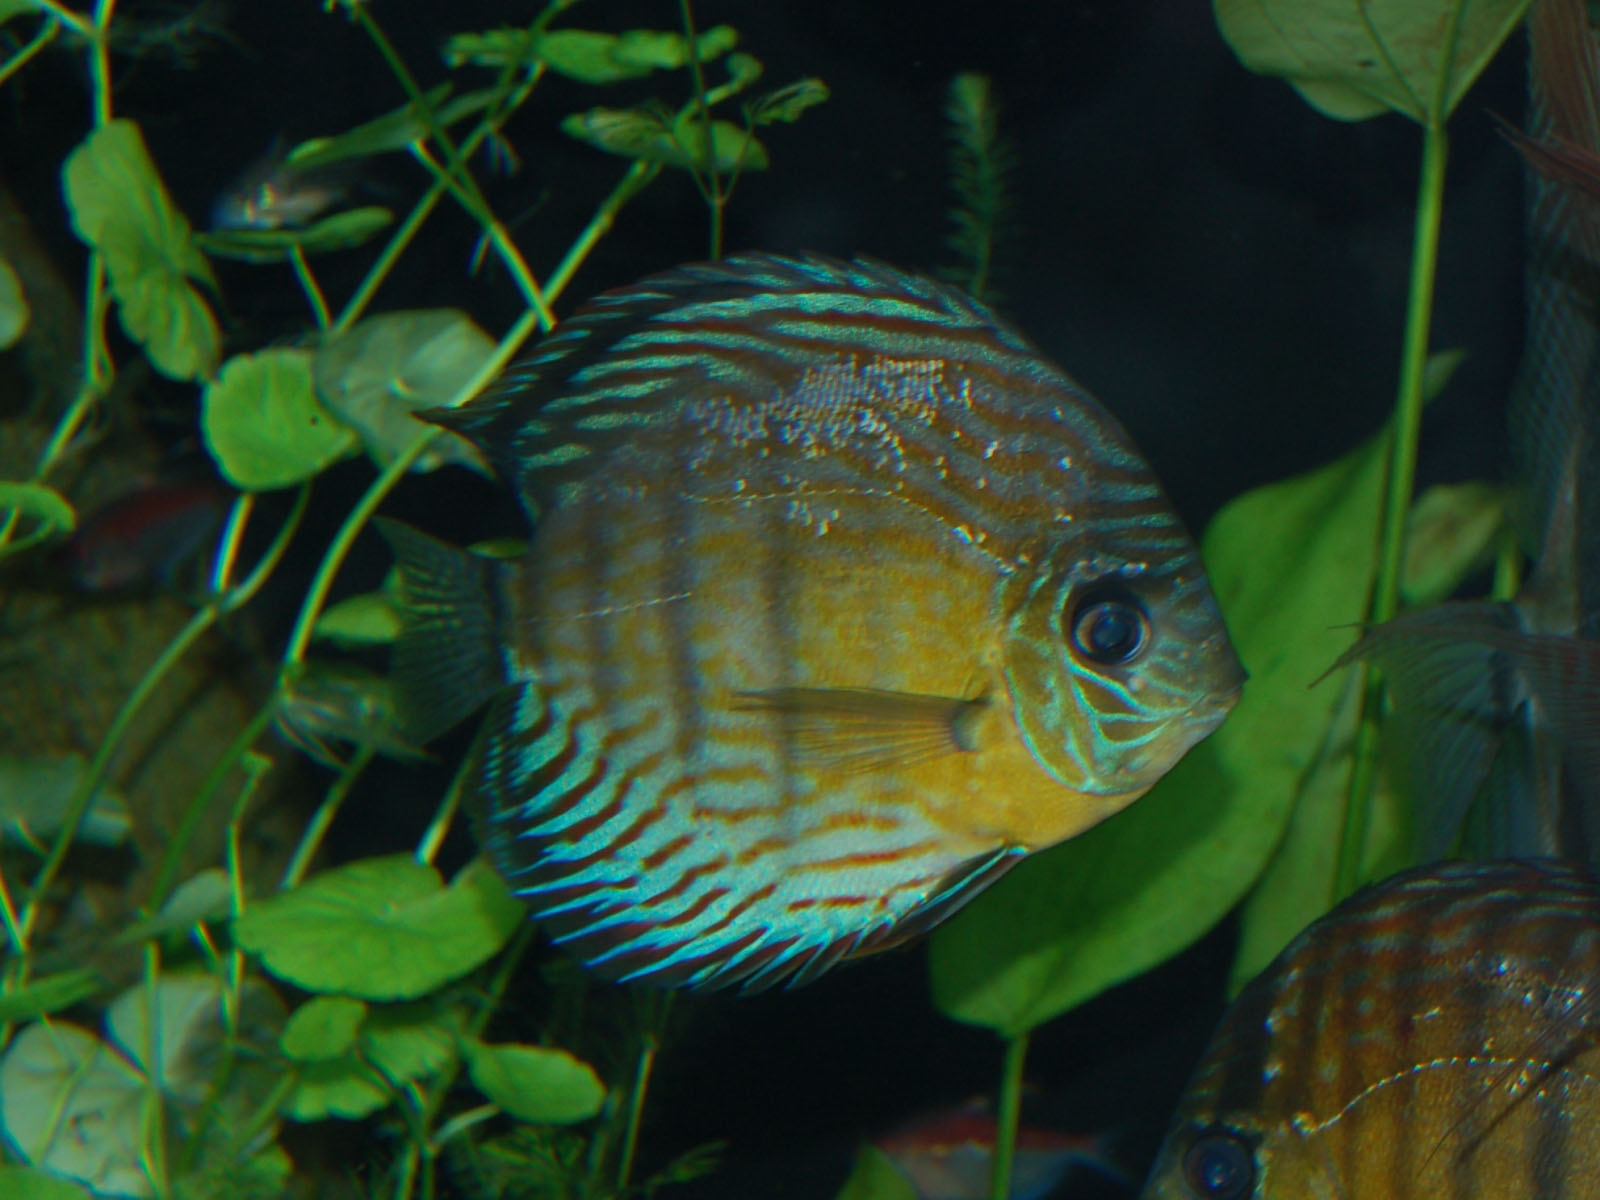 Green Discus